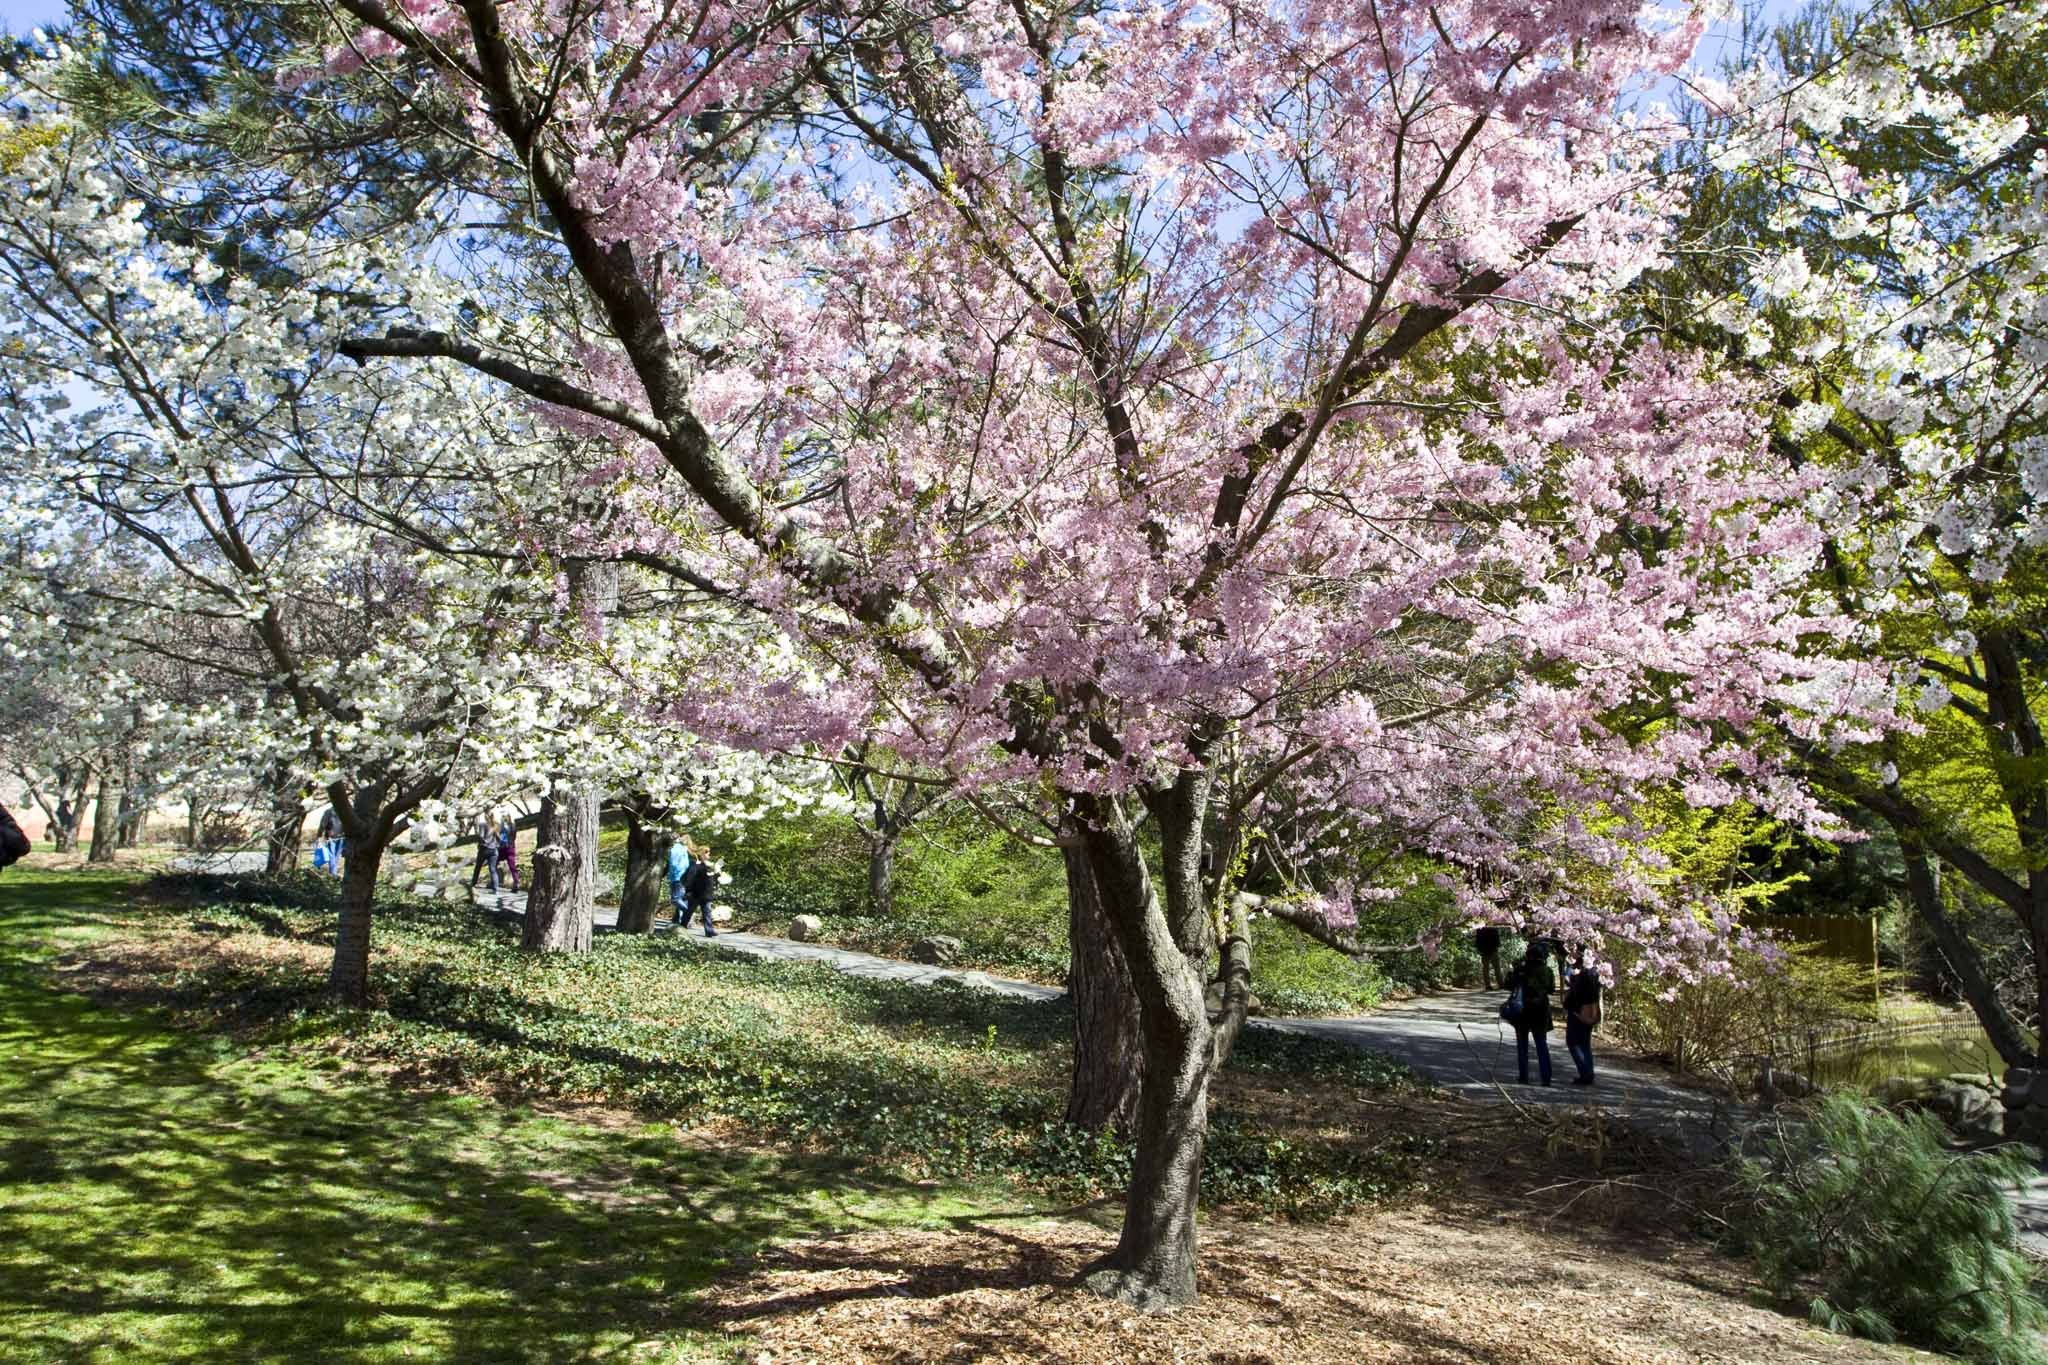 Escape the sounds of the city in the Brooklyn Botanic Garden